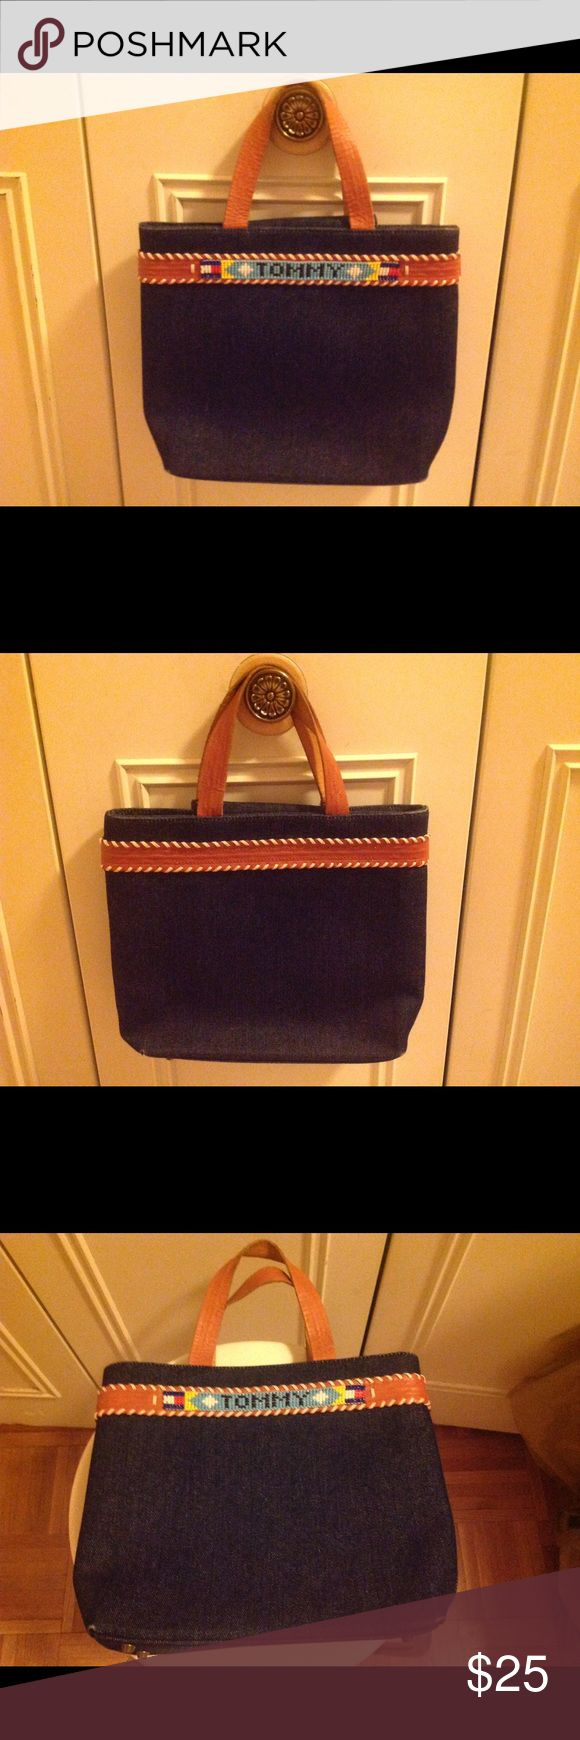 Tommy Hilfiger Jean and Leather Tote Bag Tommy Hilfiger Jean Tote Bag with Brown Leather Straps and Multi-Colored Beading Tommy Hilfiger Bags Totes